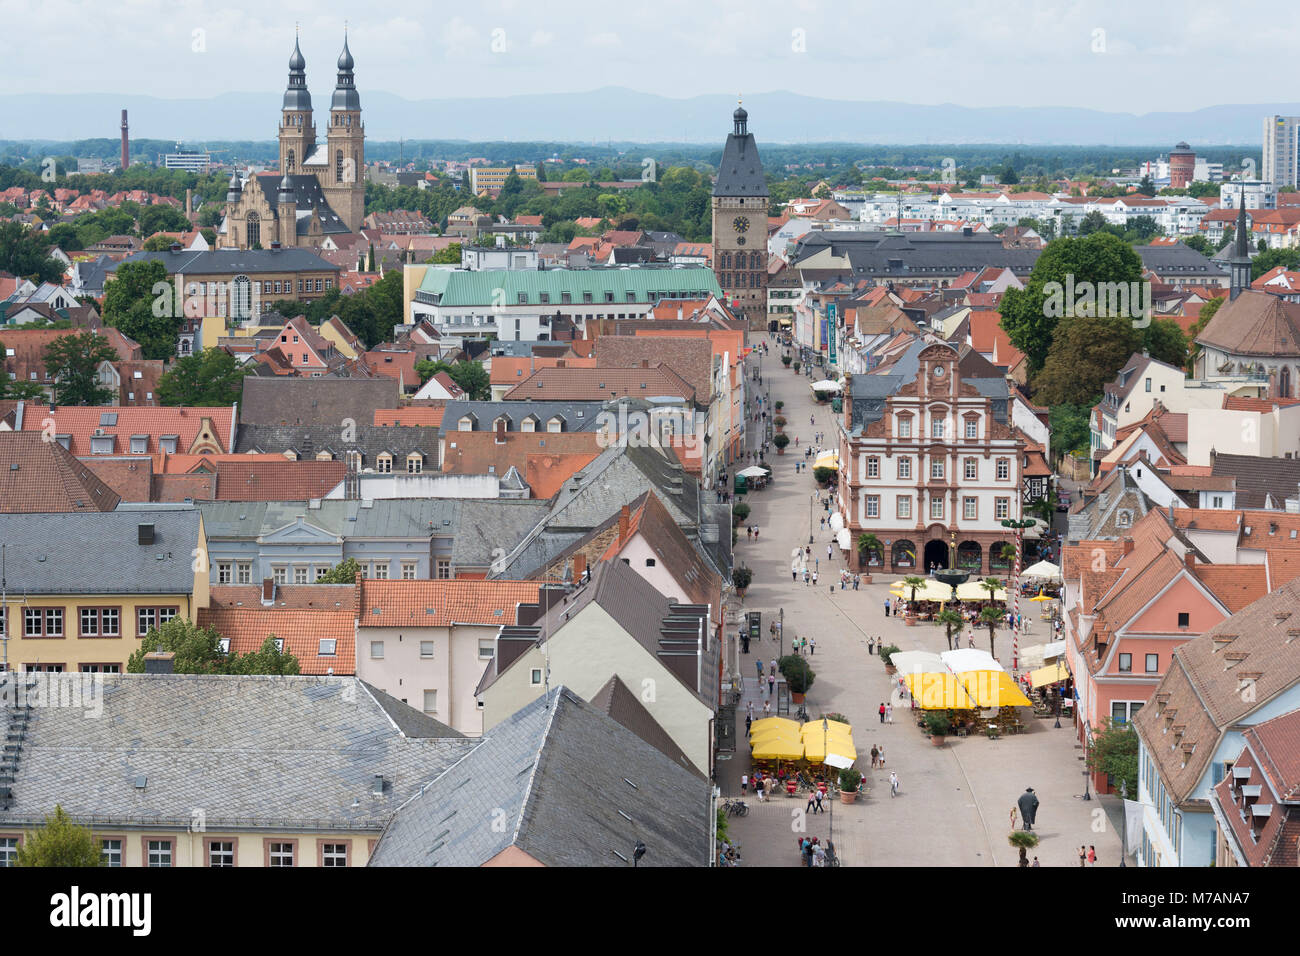 Speyer, view from the cathedral to the Maximilianstraße, with Das Altpörtel (city gate), Alter Münze - Stock Image